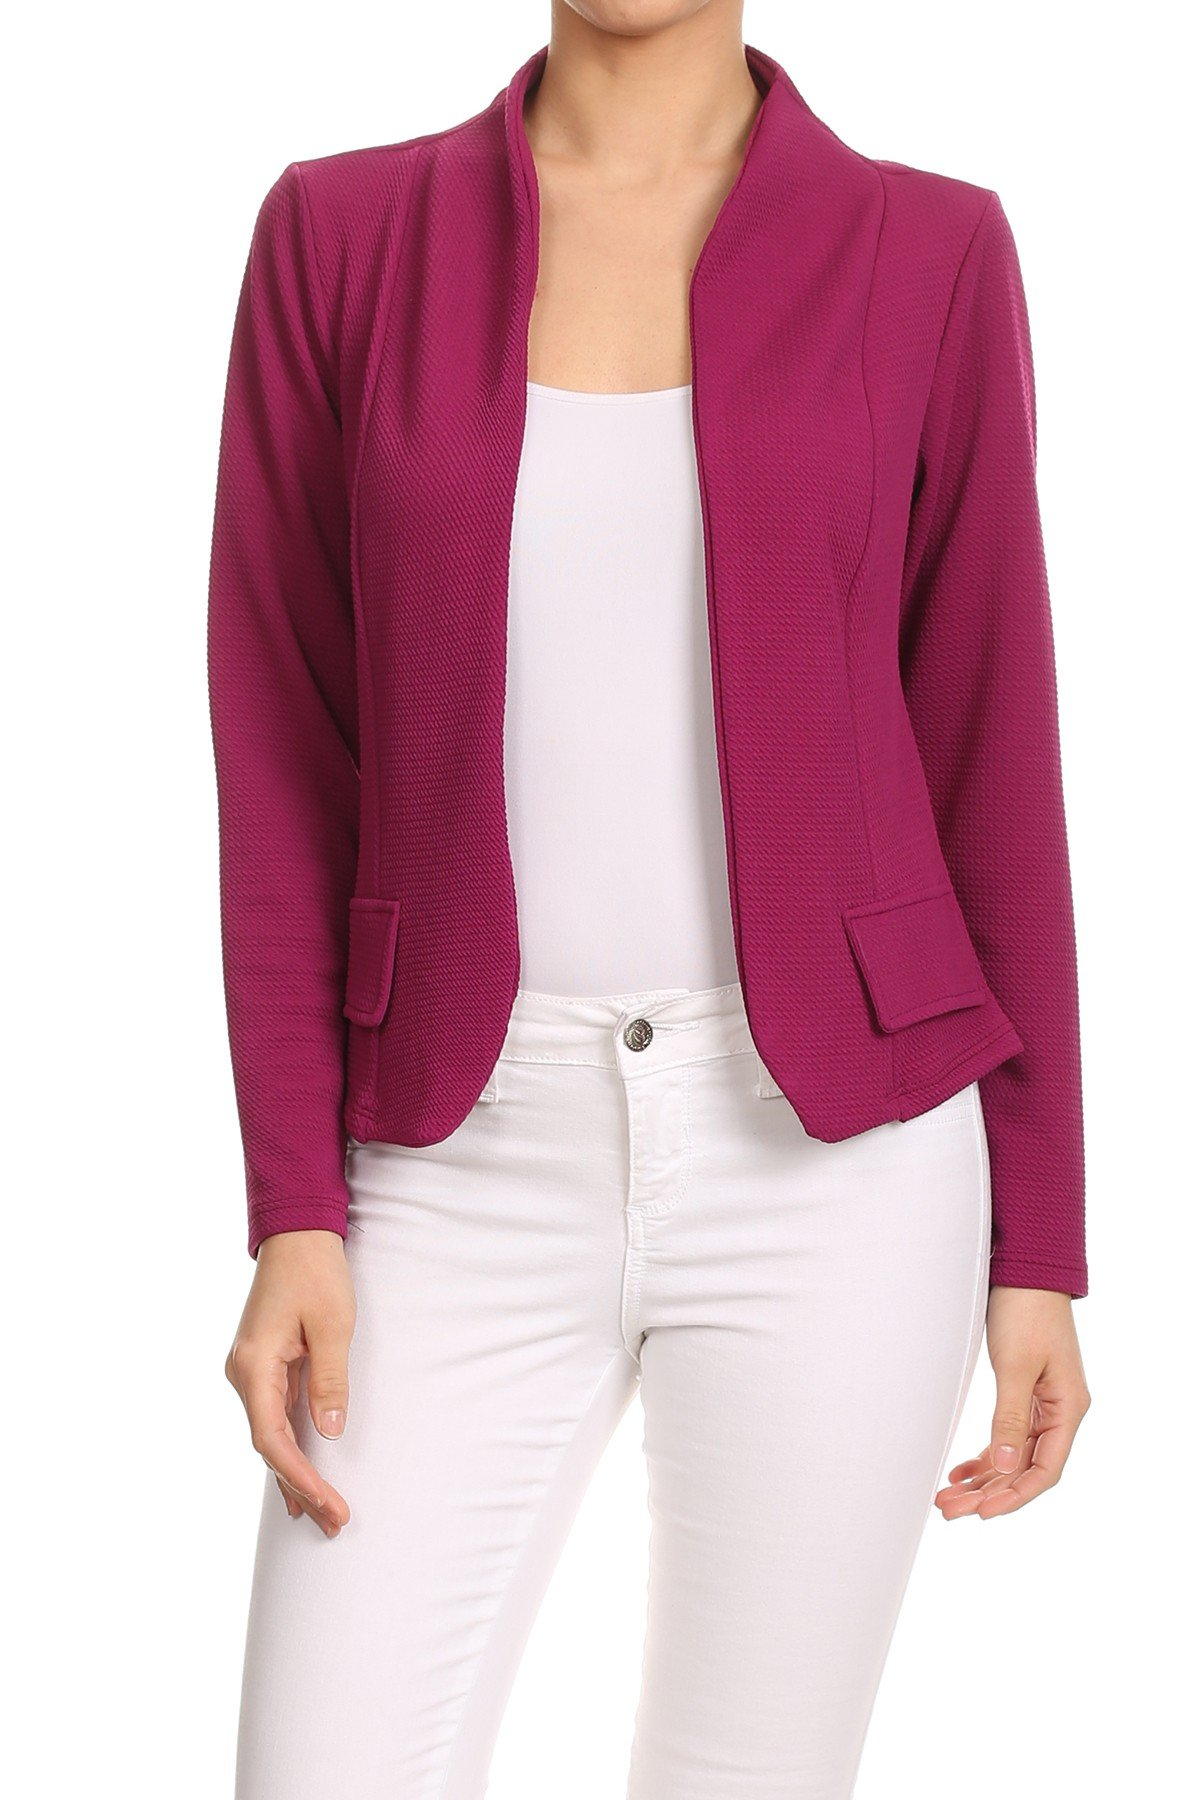 MissyMissy Womens Casual Business Loose Fit Solid Blazer Jackets J907 (3X-Large, Magenta)